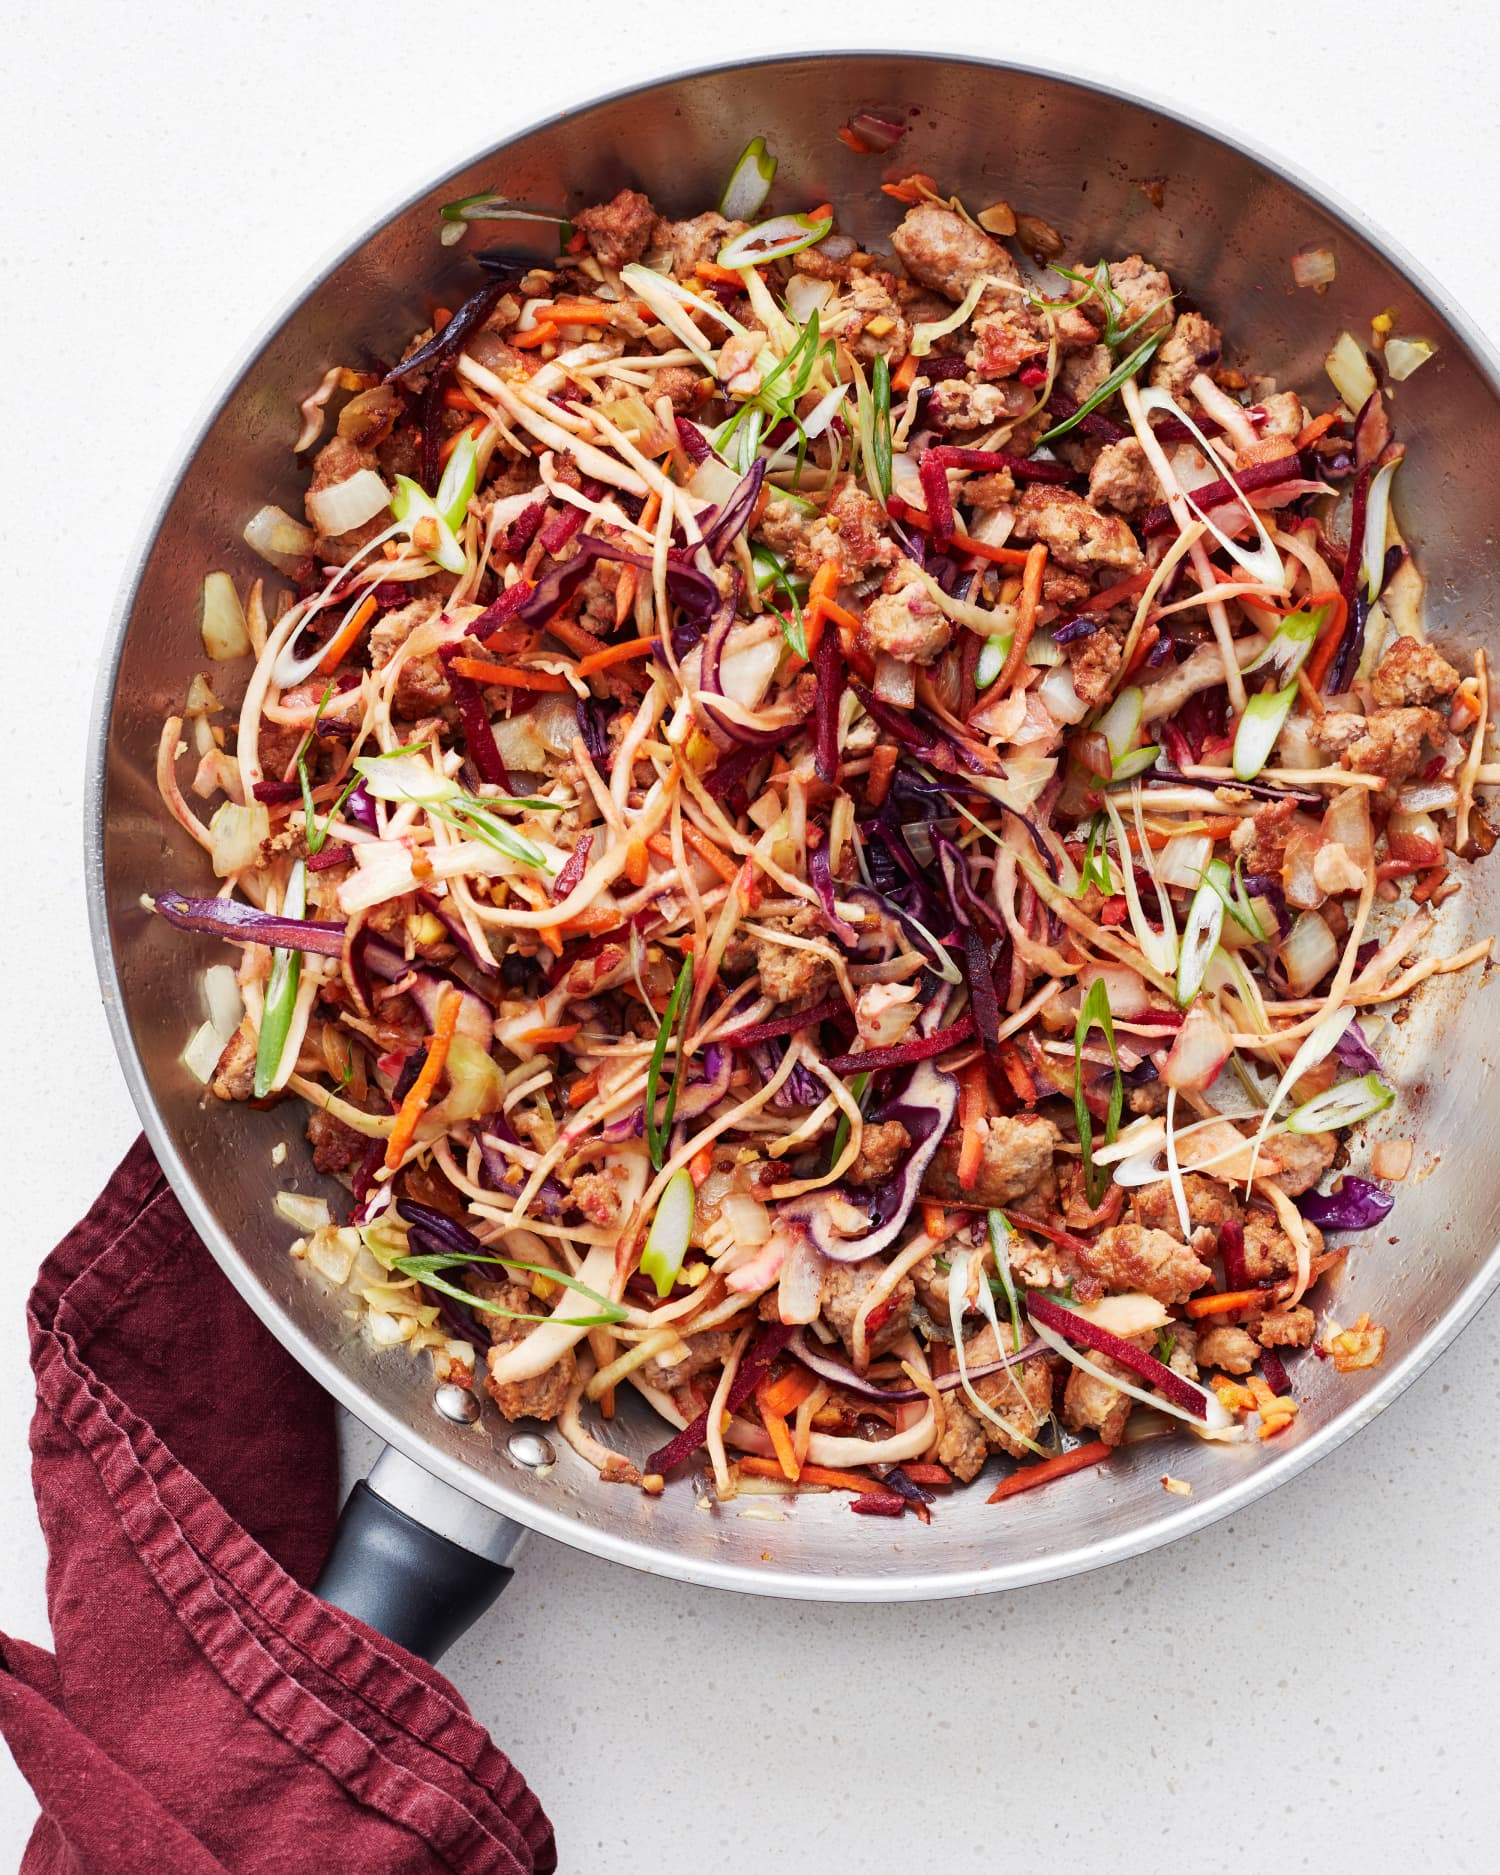 Recipe: Egg Roll Skillet